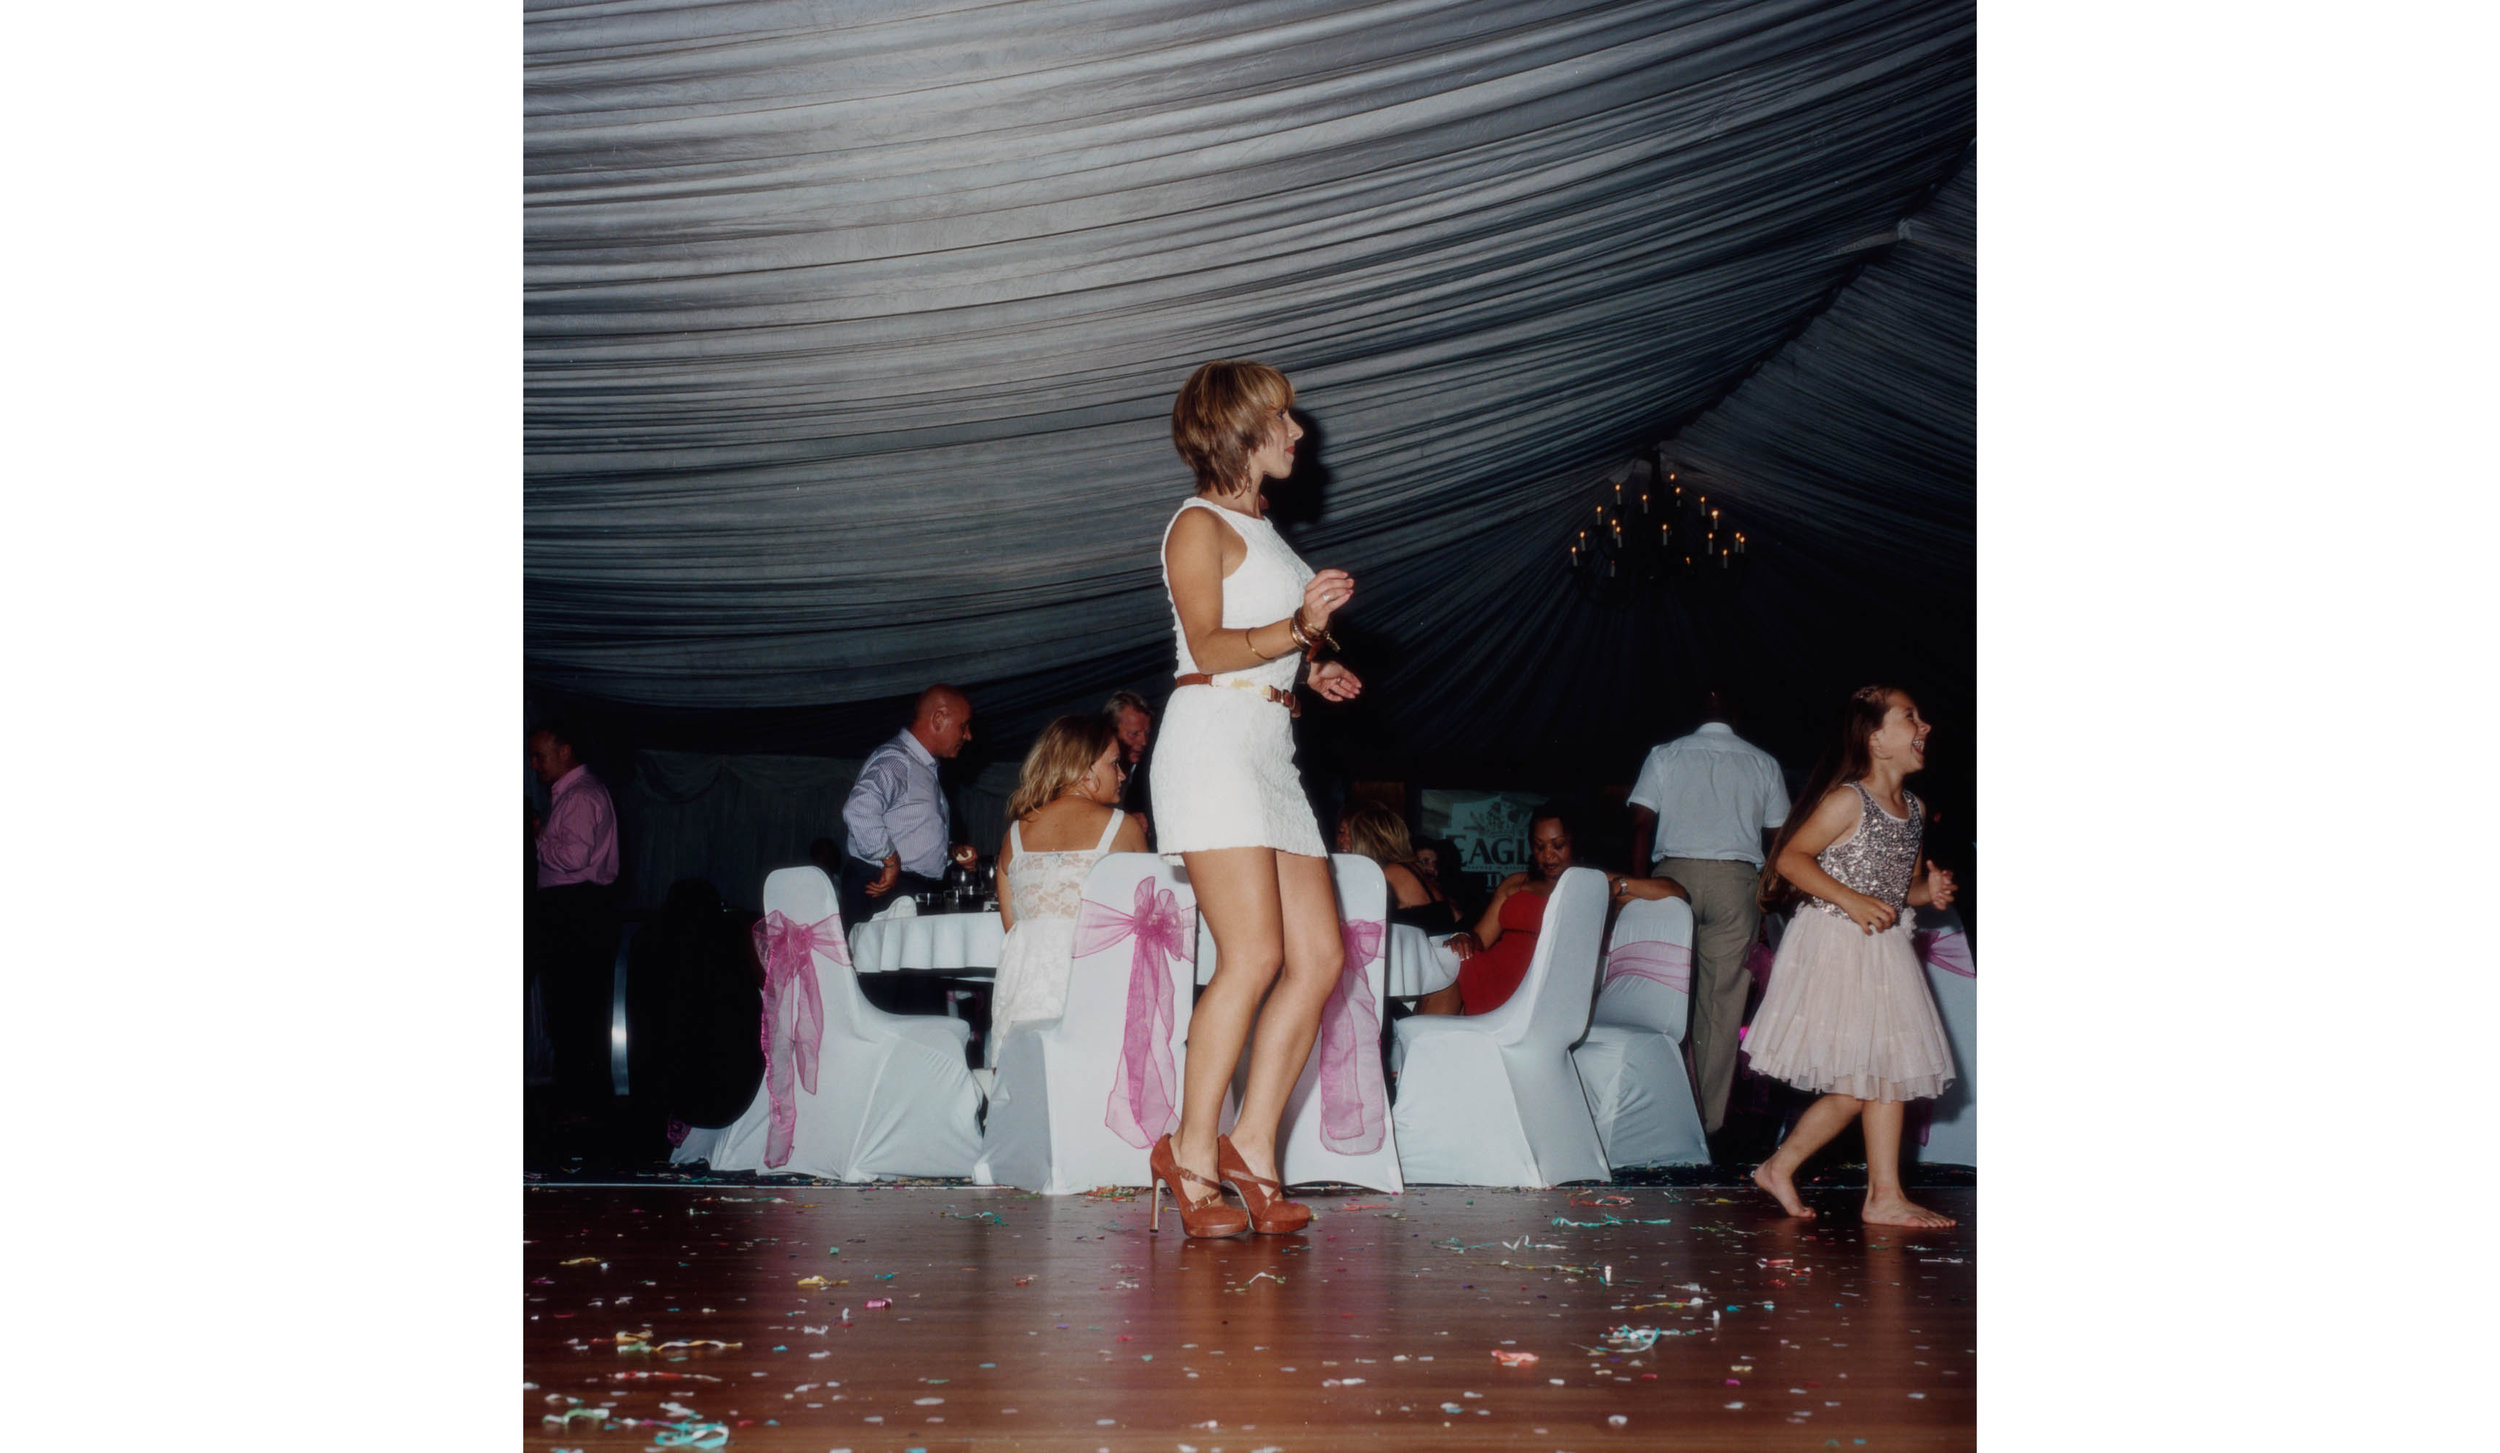 Woman dancing, Tara & Vito's Wedding, Bedford, UK , 2013                                                              C-type print, 32 x 32 inches